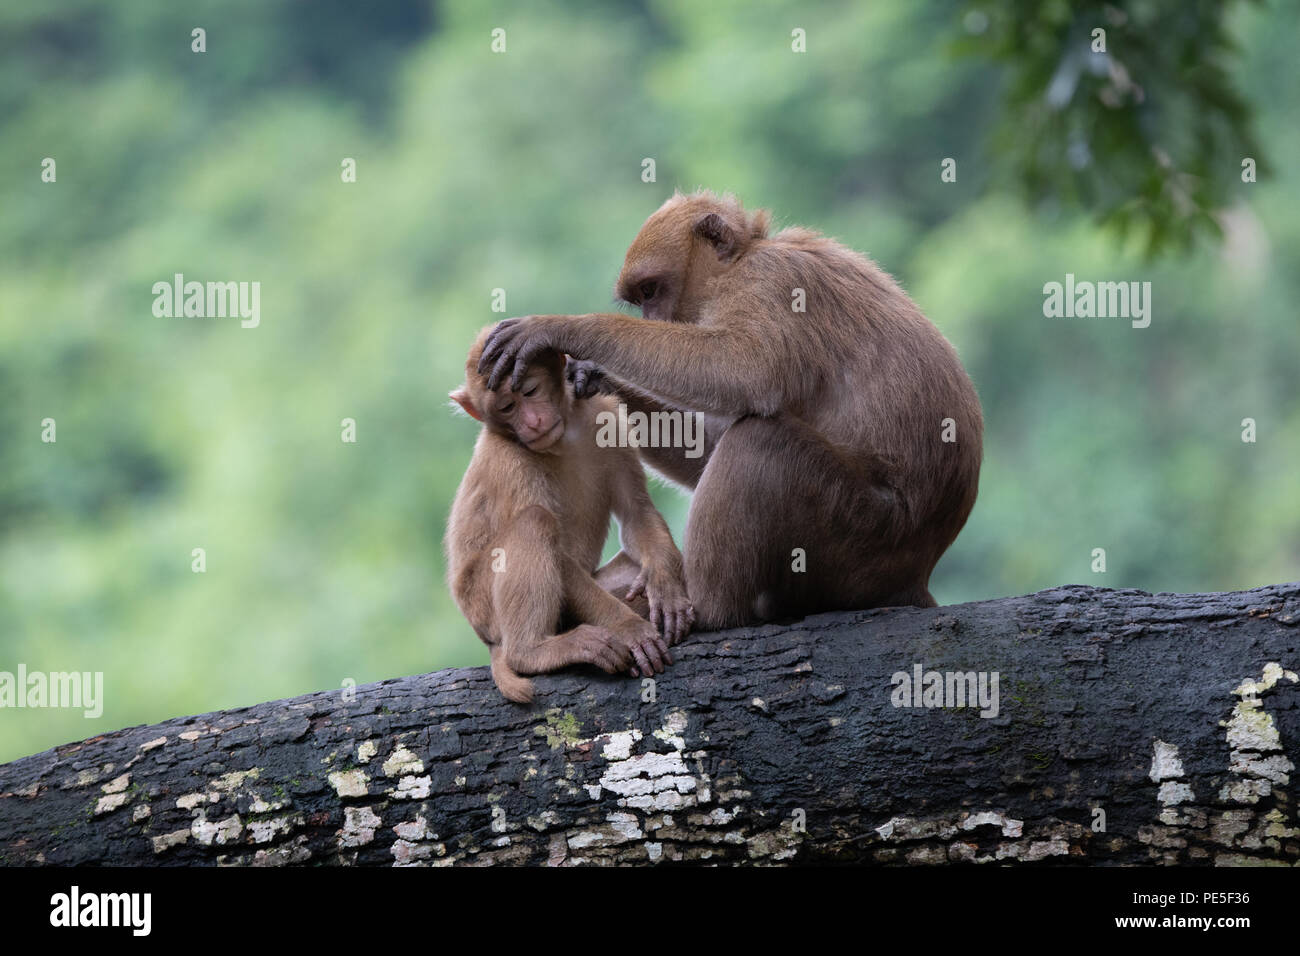 The Assam macaque (Macaca assamensis) is a macaque of the Old World monkey family native to South and Southeast Asia. - Stock Image